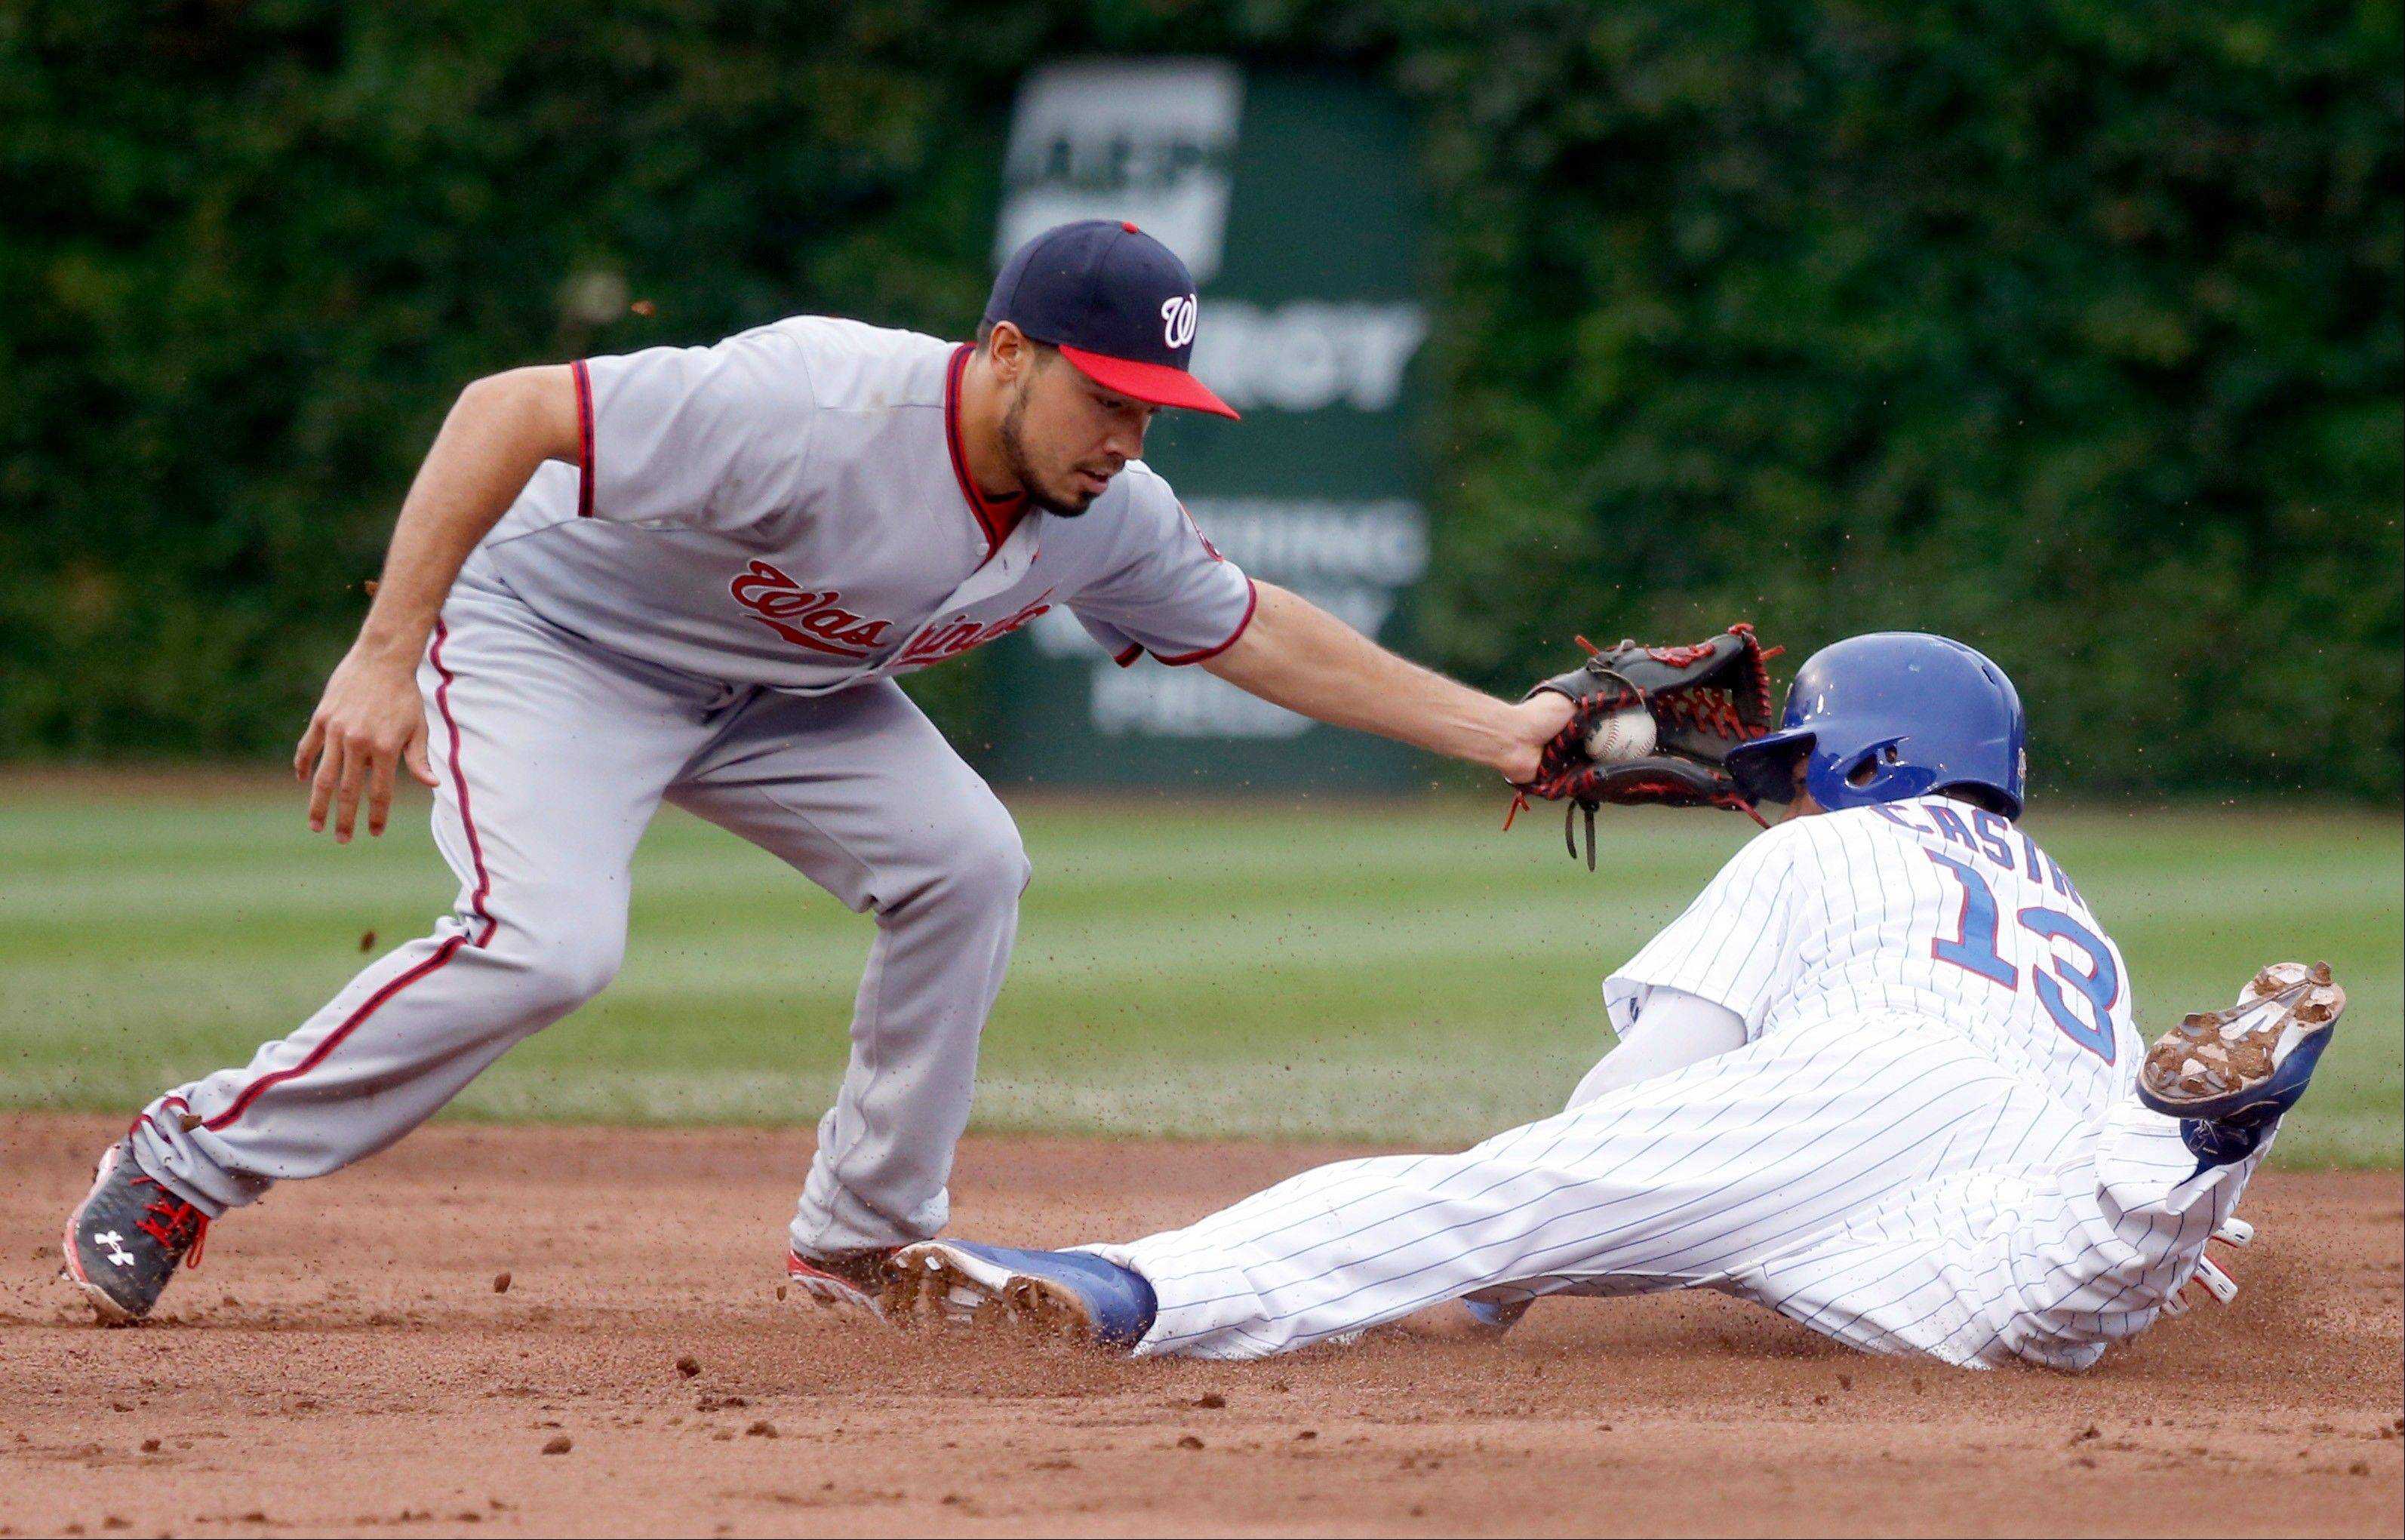 Nationals second baseman Anthony Rendon catches the Cubs' Starlin Castro trying to steal second during the third inning of Thursday's game at Wrigley Field. Washington won in 13 innings.